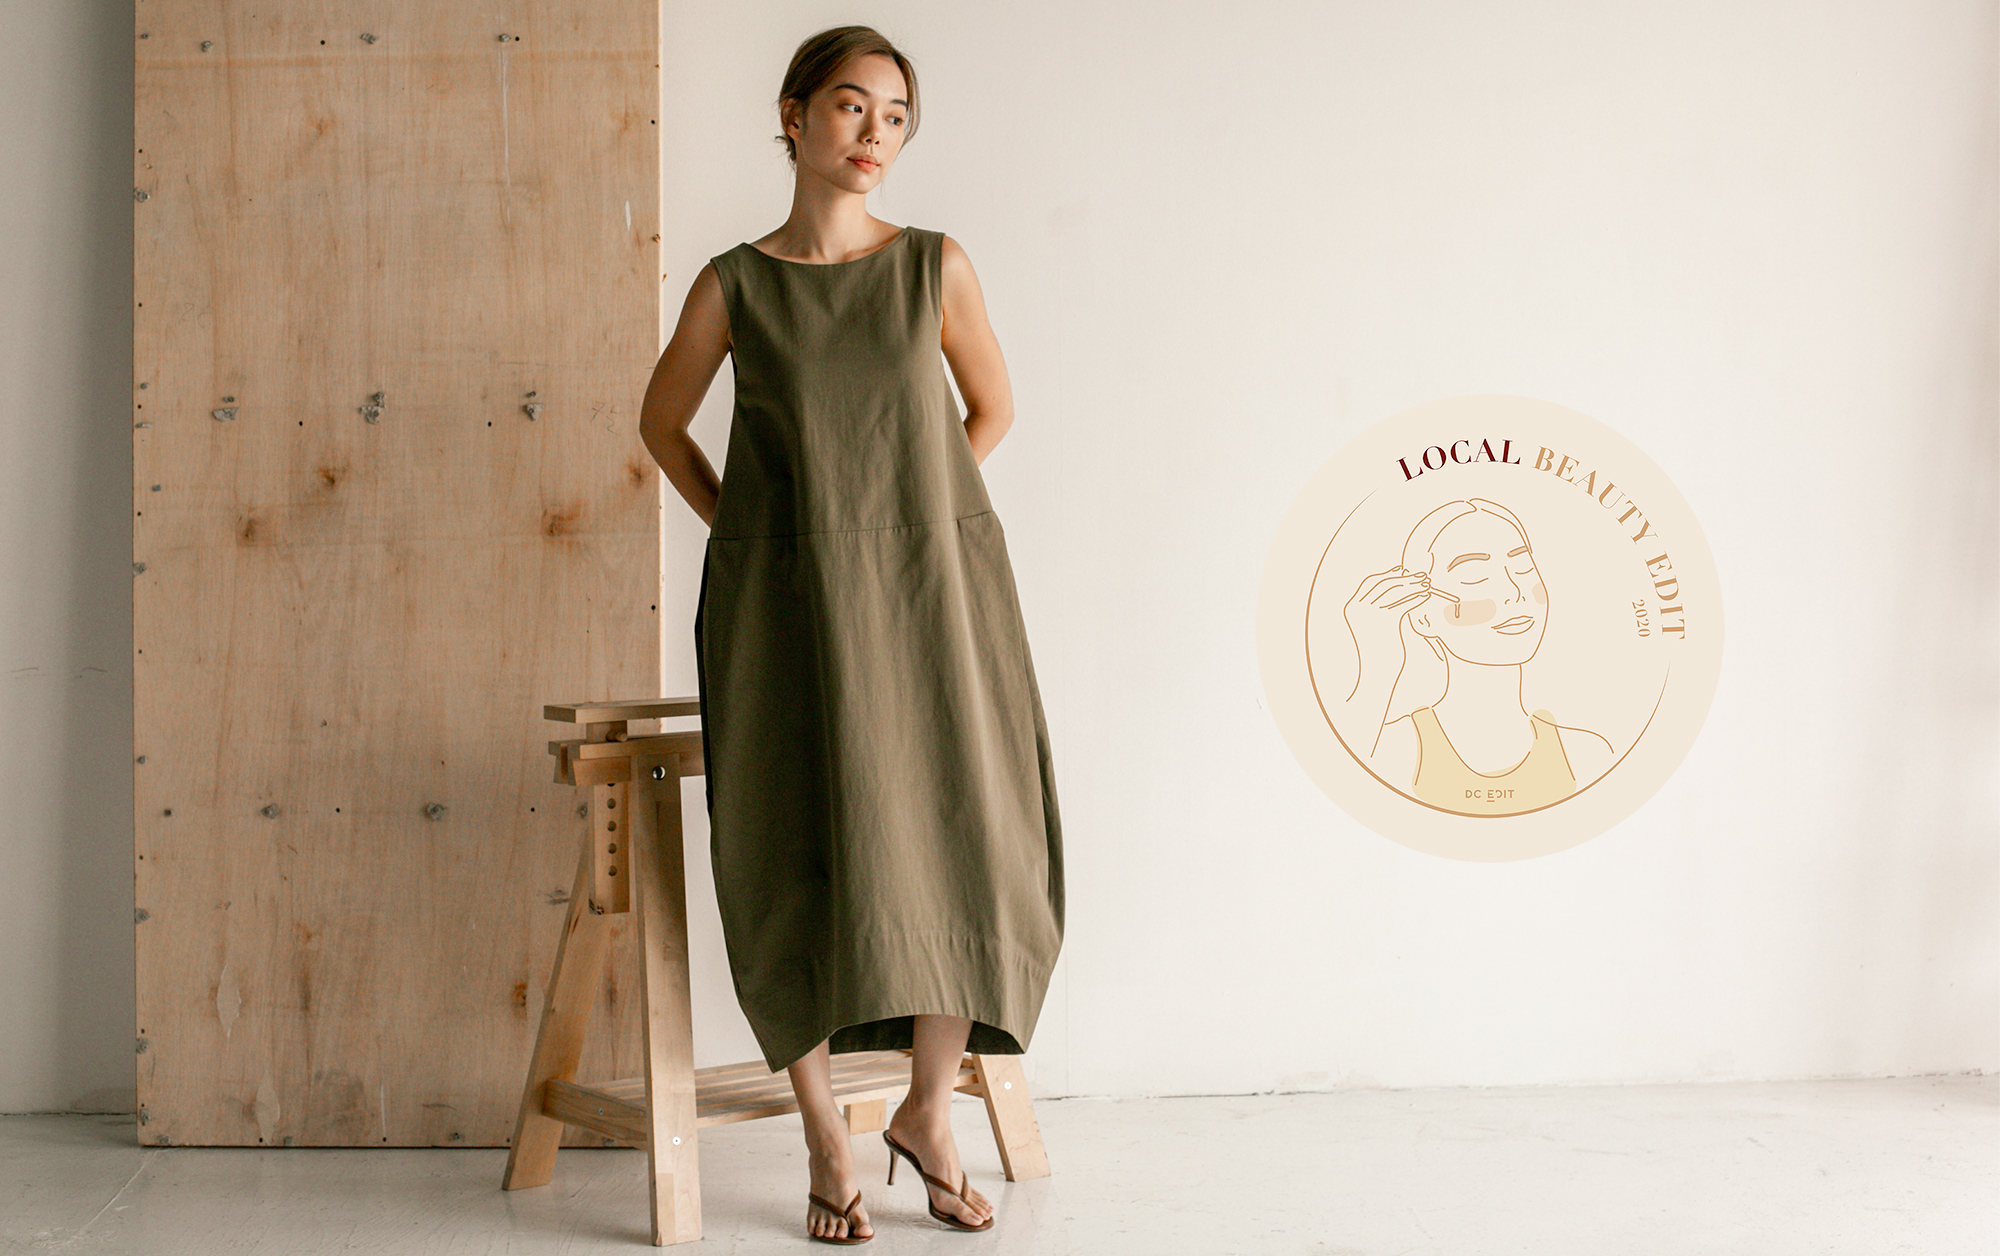 Local Labels Lookbook: Singaporean Beauty and Fashion